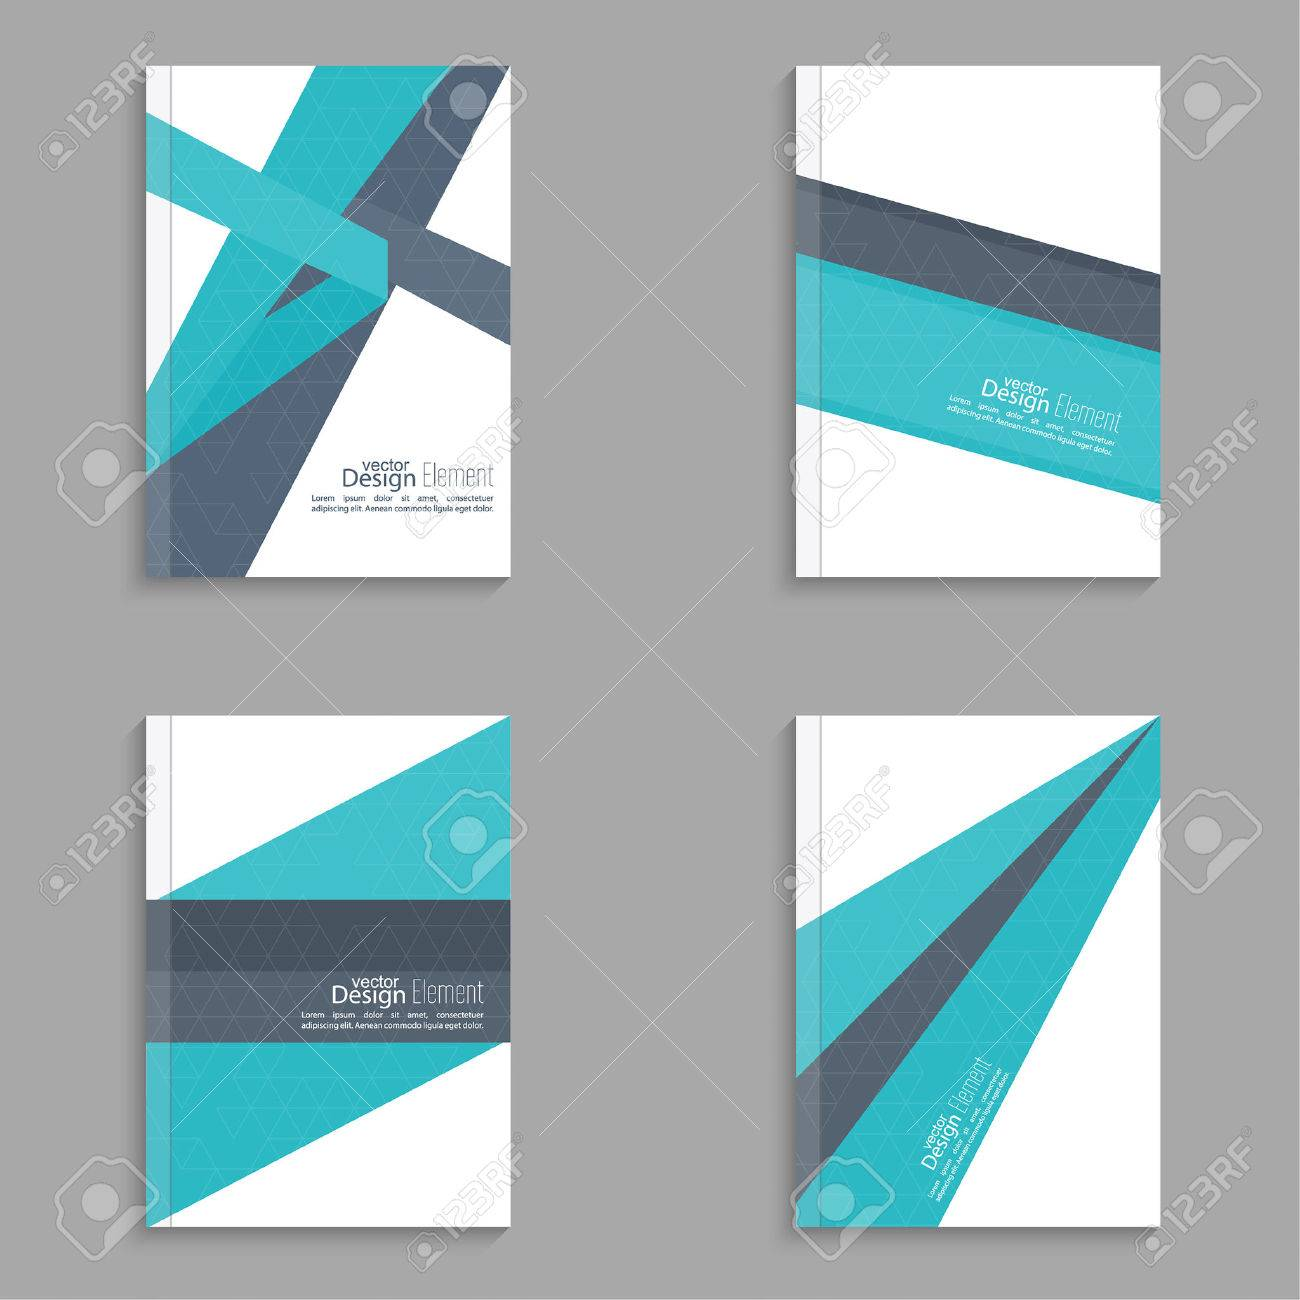 Set Magazine Cover with origami intersecting ribbons. For book, brochure, flyer, poster, booklet, leaflet, cd cover, postcard, business card, annual report. vector illustration. abstract background - 47491200